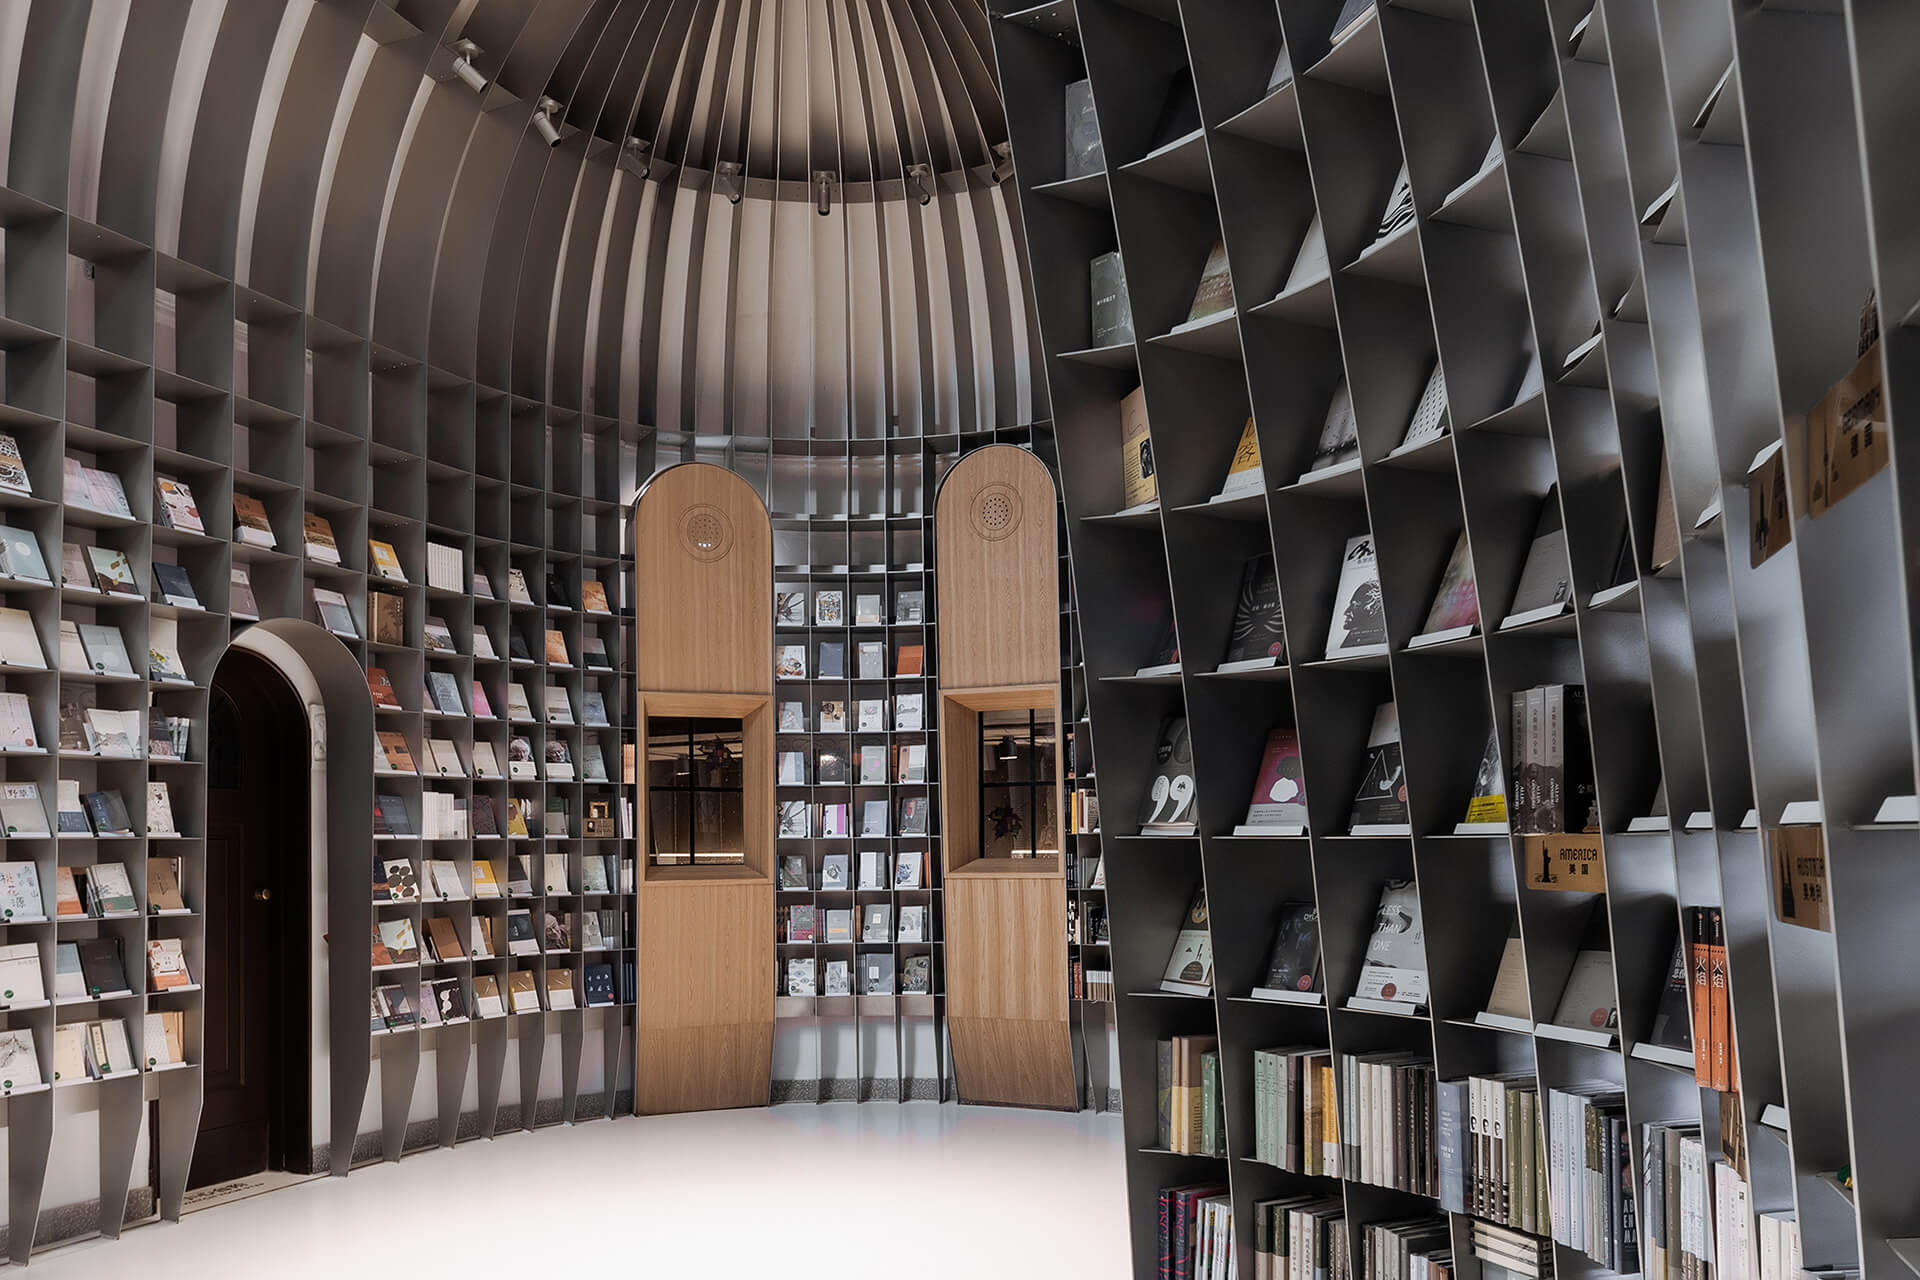 Wutopia Lab inserted a stunning steel framework inside, forming the bookstore's sanctuary | Sinan Books Poetry Store by Wutopia Lab | STIRworld